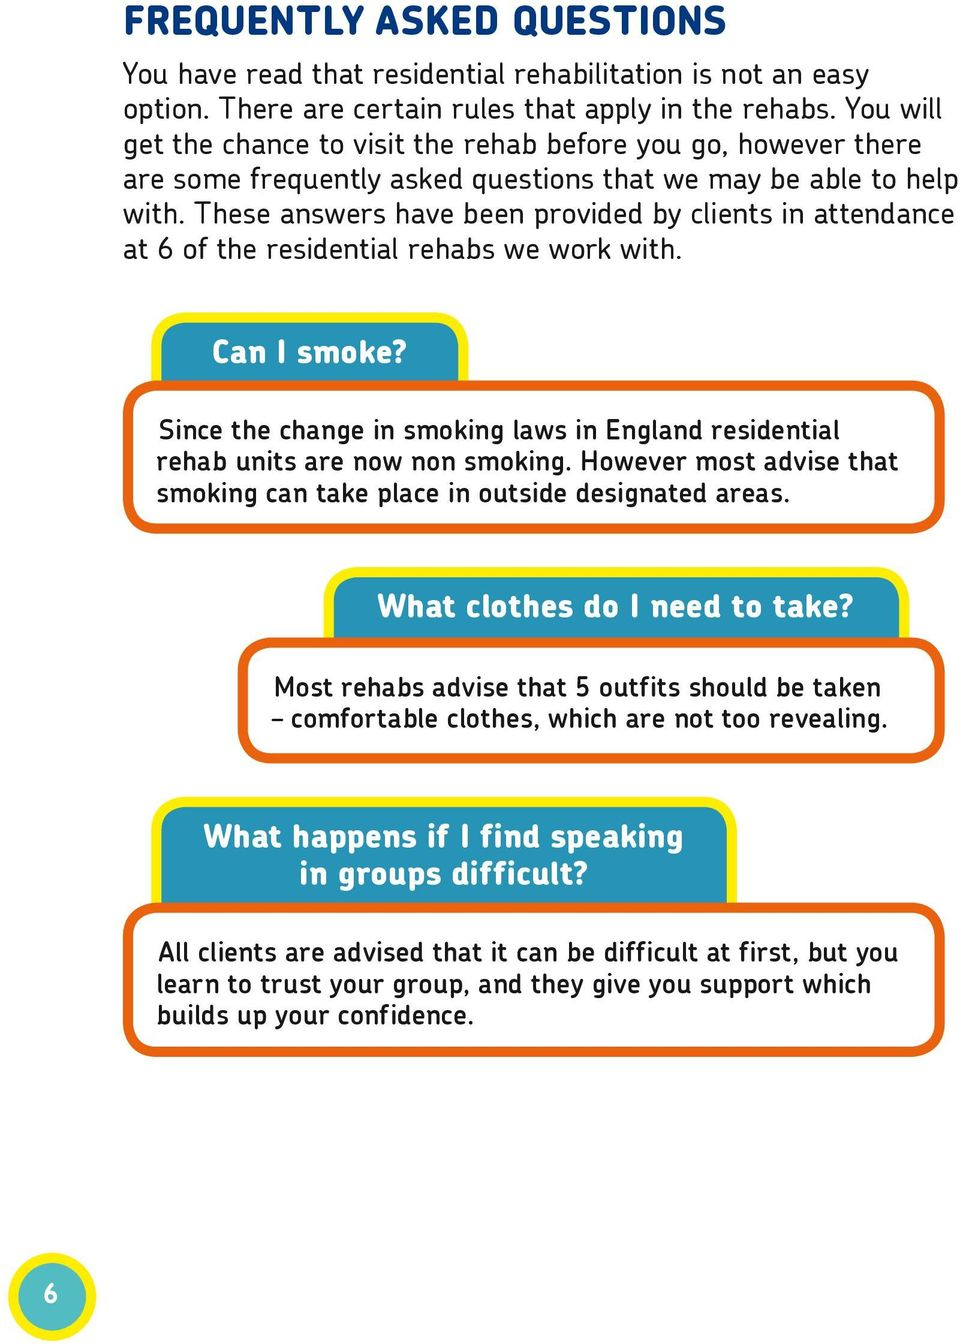 These answers have been provided by clients in attendance at 6 of the residential rehabs we work with. Can I smoke?